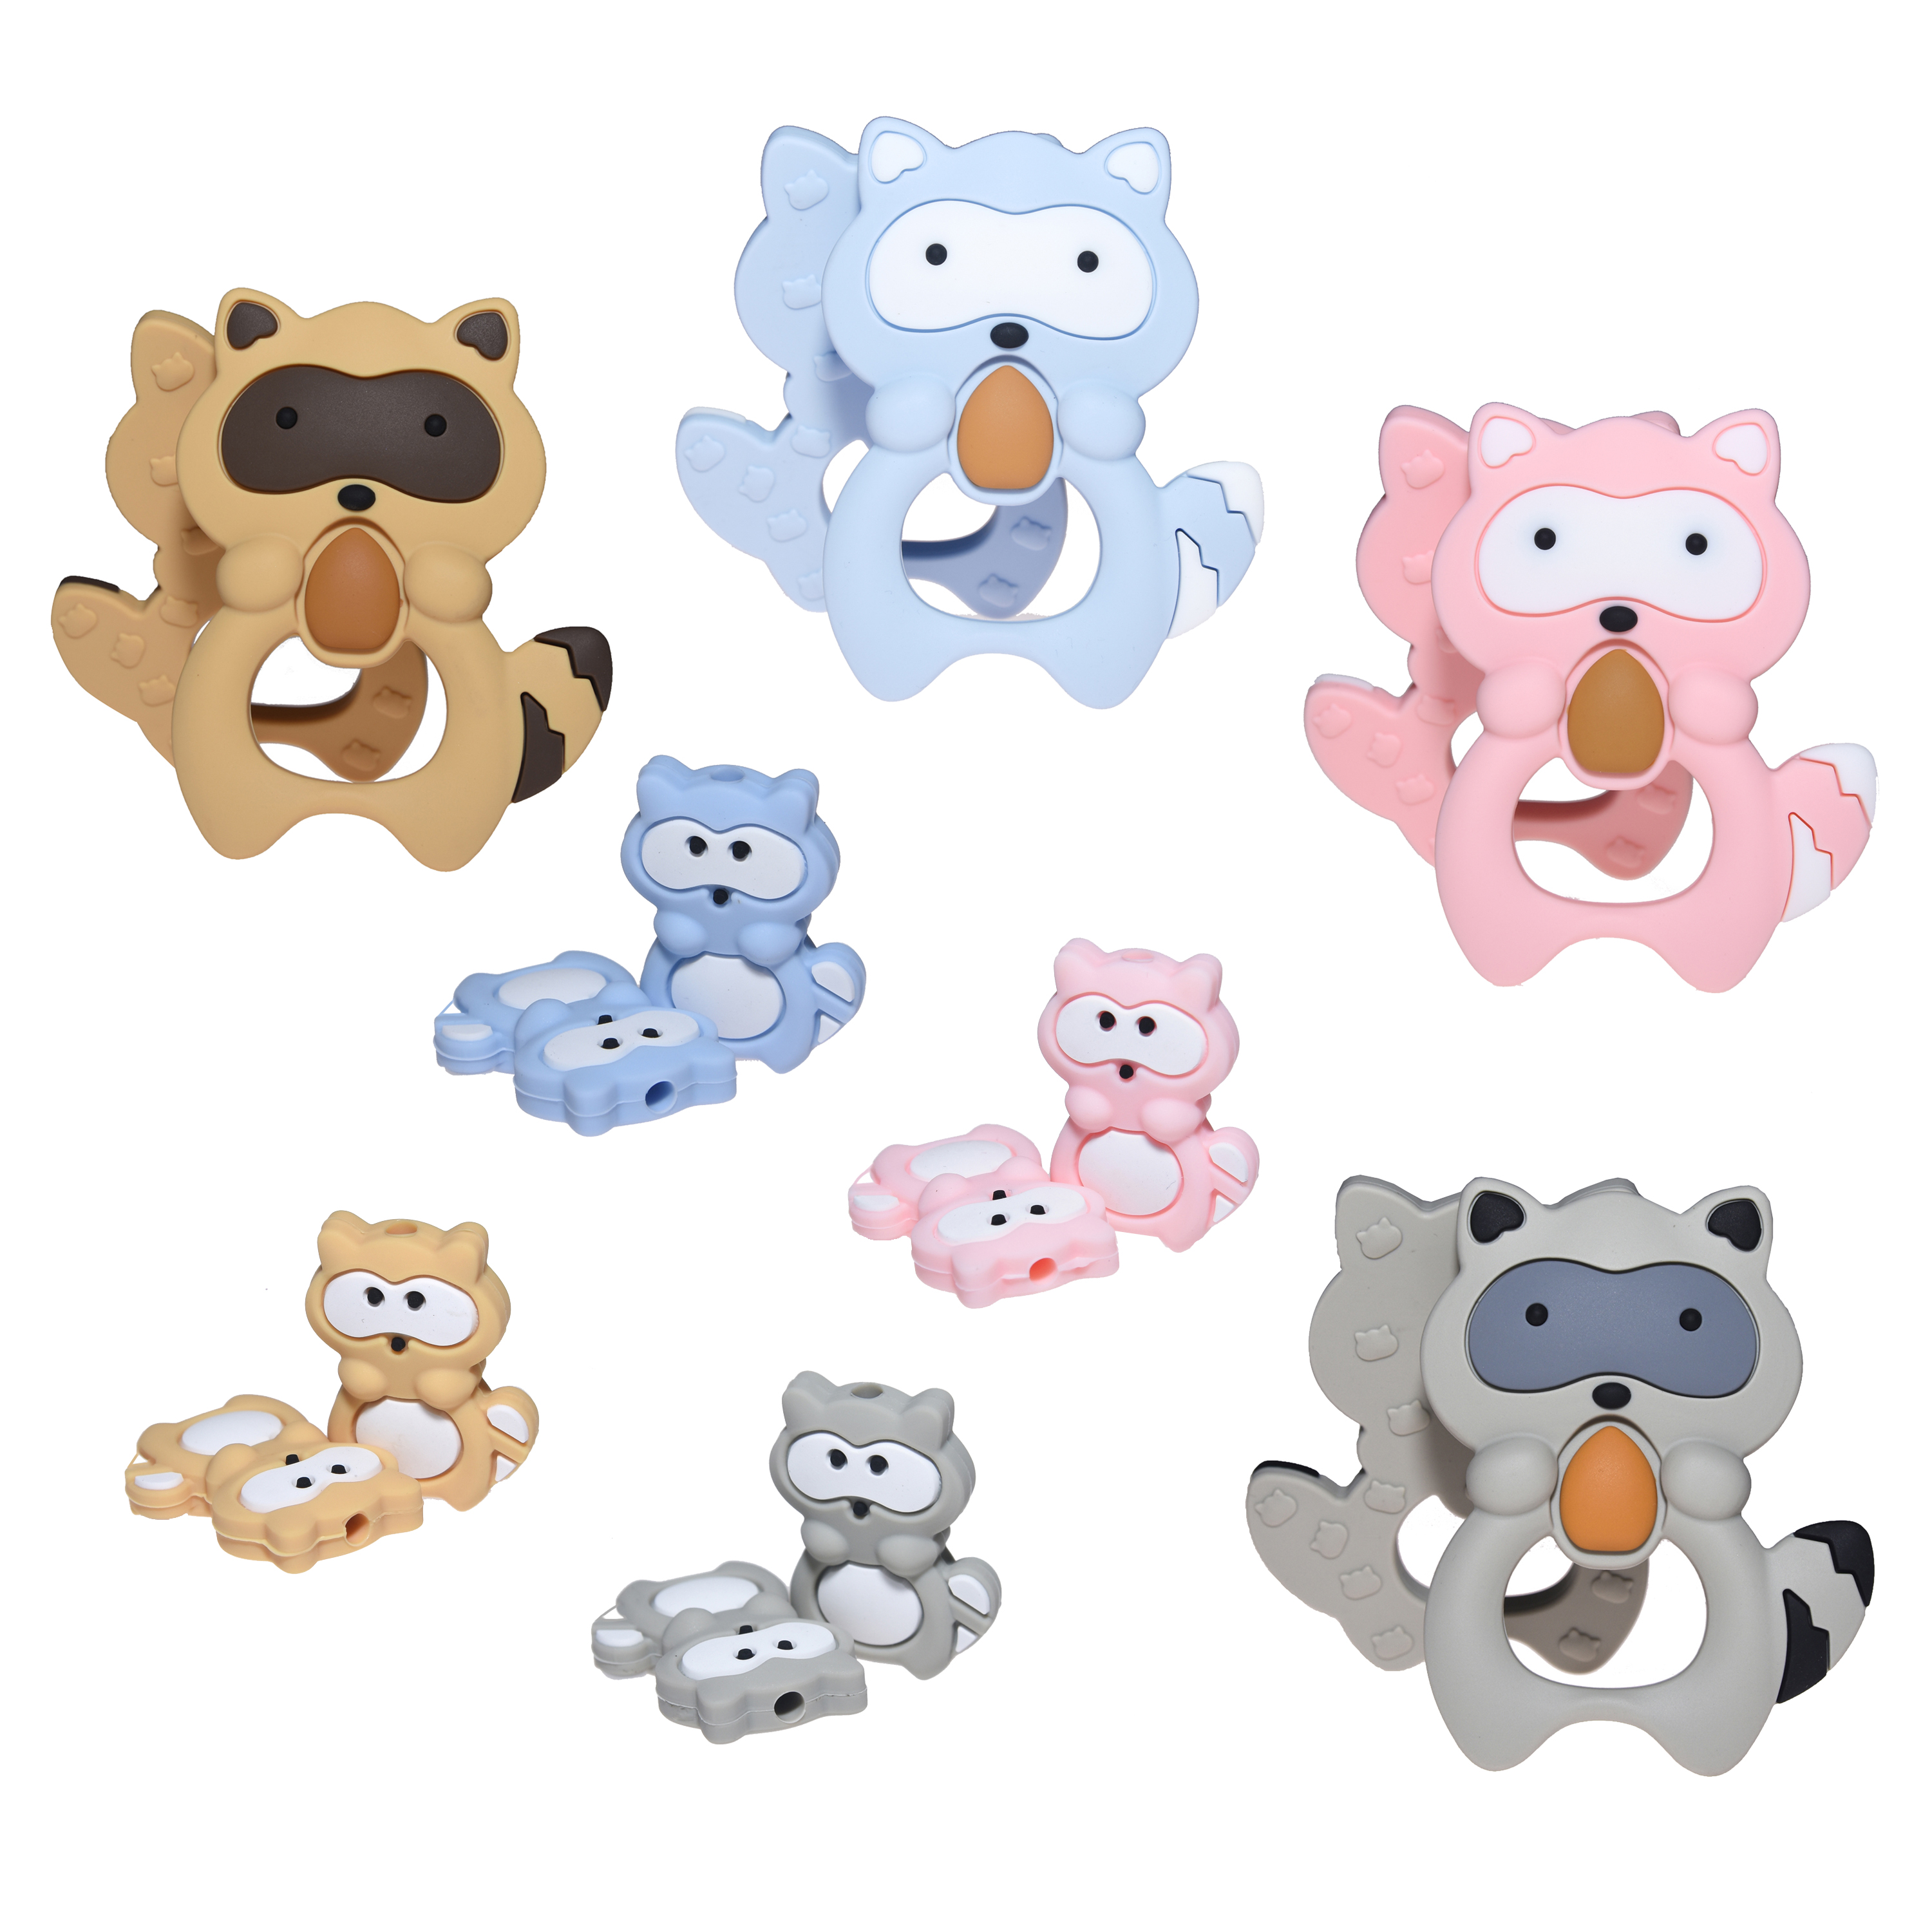 Happyfriends Cute Silicone Raccoon Beads Teether Set Baby Teething Chew Pacifier Clip Chain Toy Accessories Baby Teethers